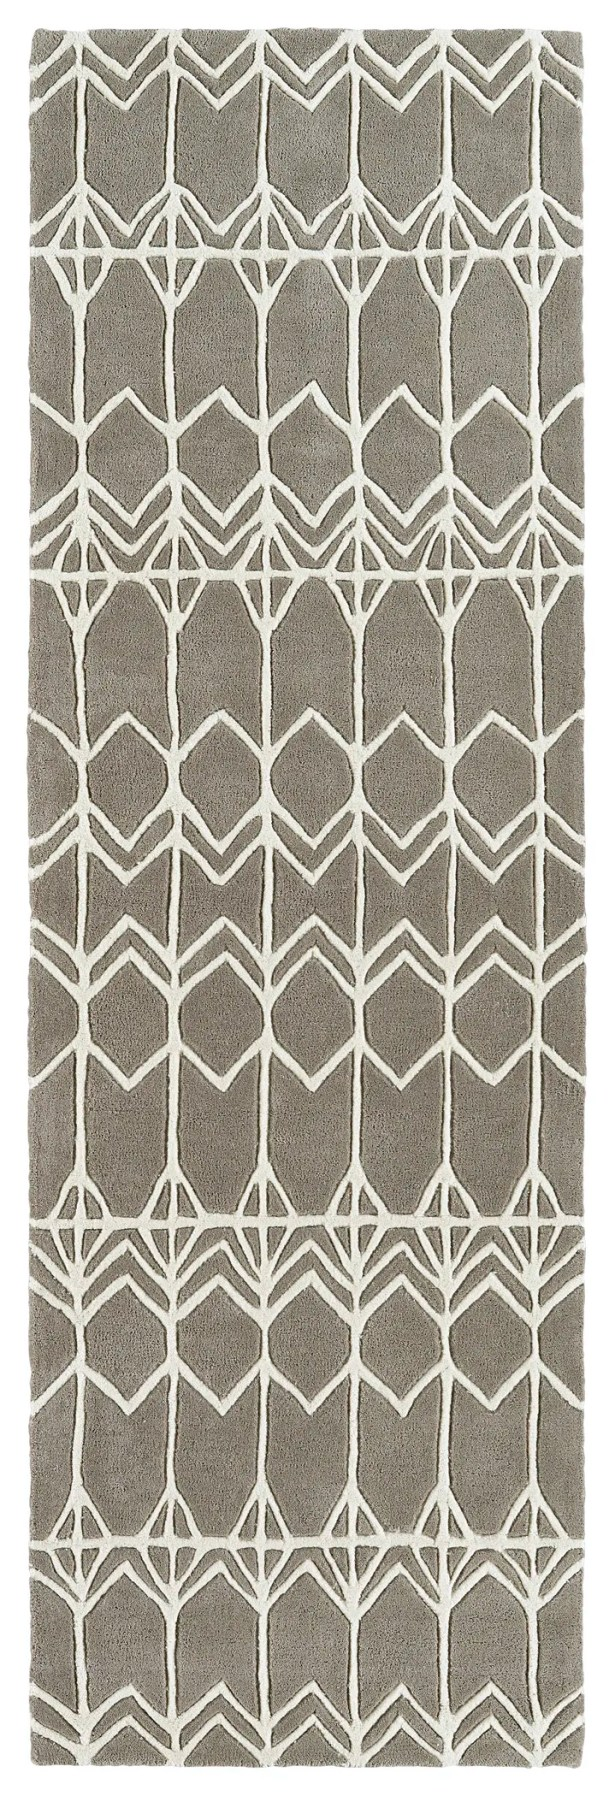 Ronnie Hand-Tufted Gray Area Rug Rug Size: Rectangle 8' x 10'